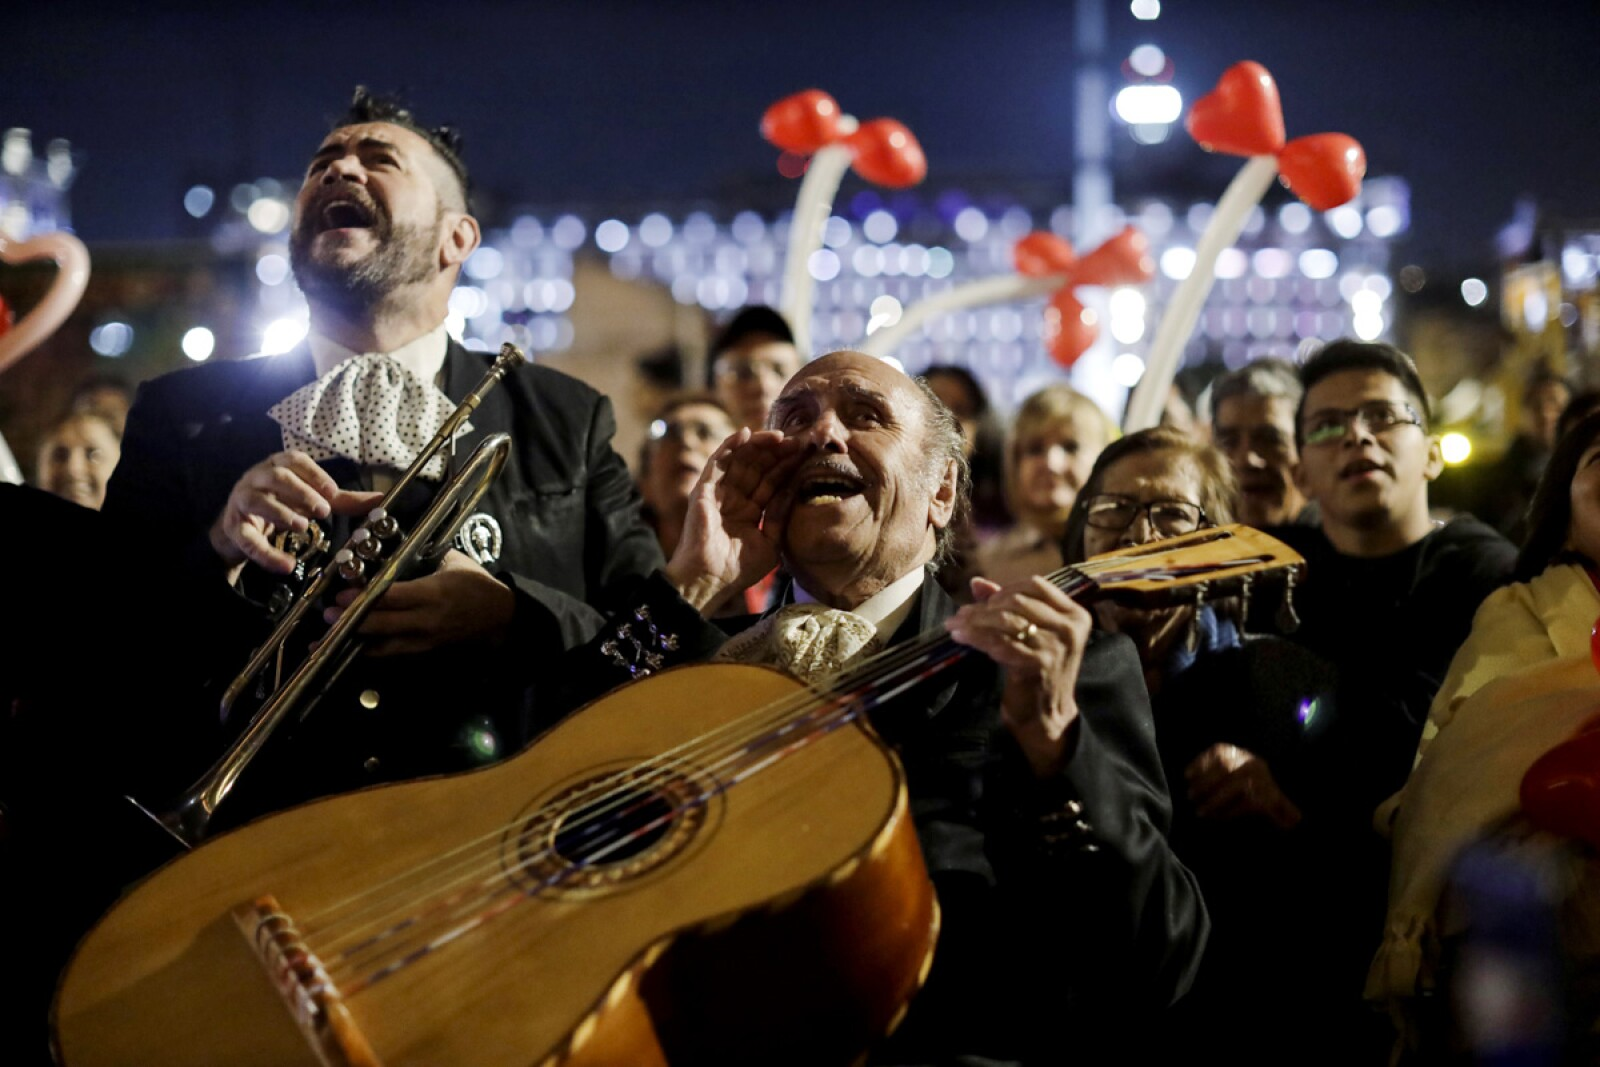 A mariachi sing along supporters of Mexico's President Andres Manuel Lopez Obrador during a serenade for his birthday outside National Palace in downtown Mexico City